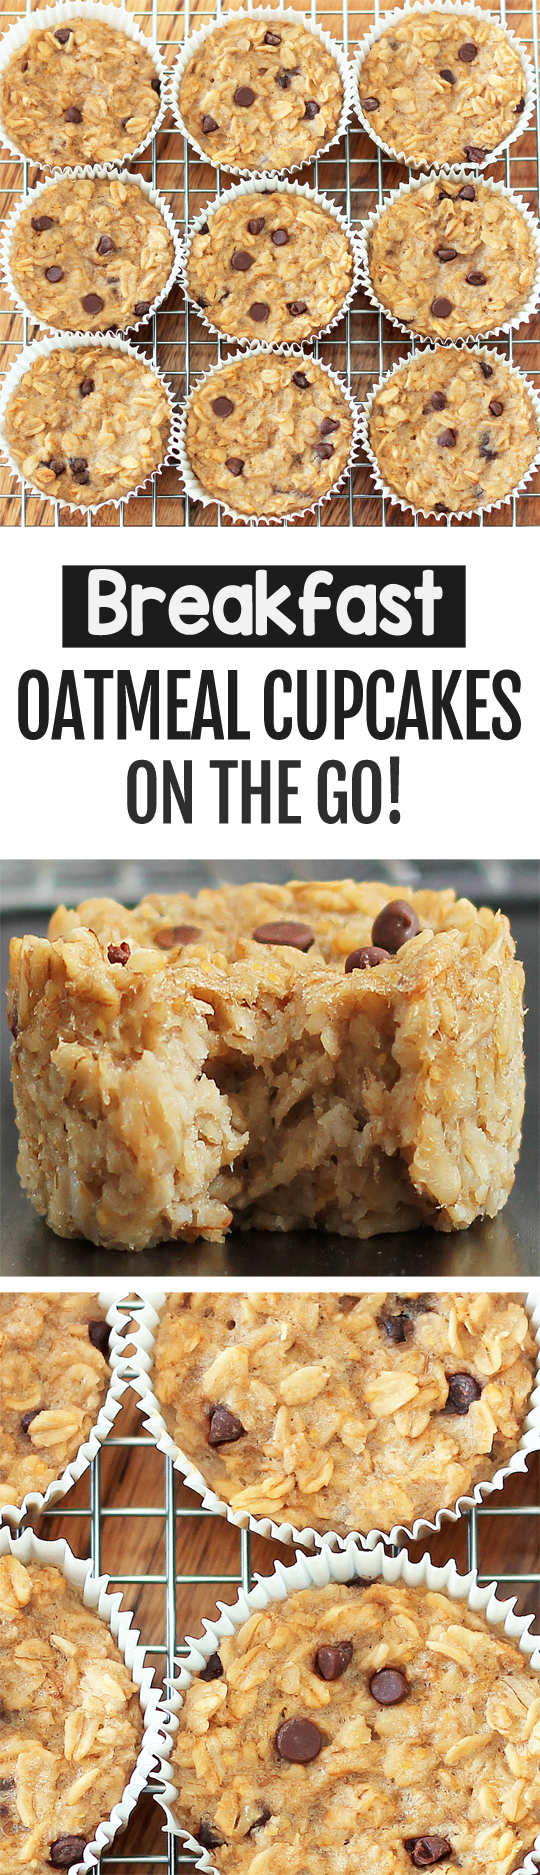 Breakfast Oatmeal Cupcakes To Go - You cook just ONCE and get a delicious breakfast for the entire month